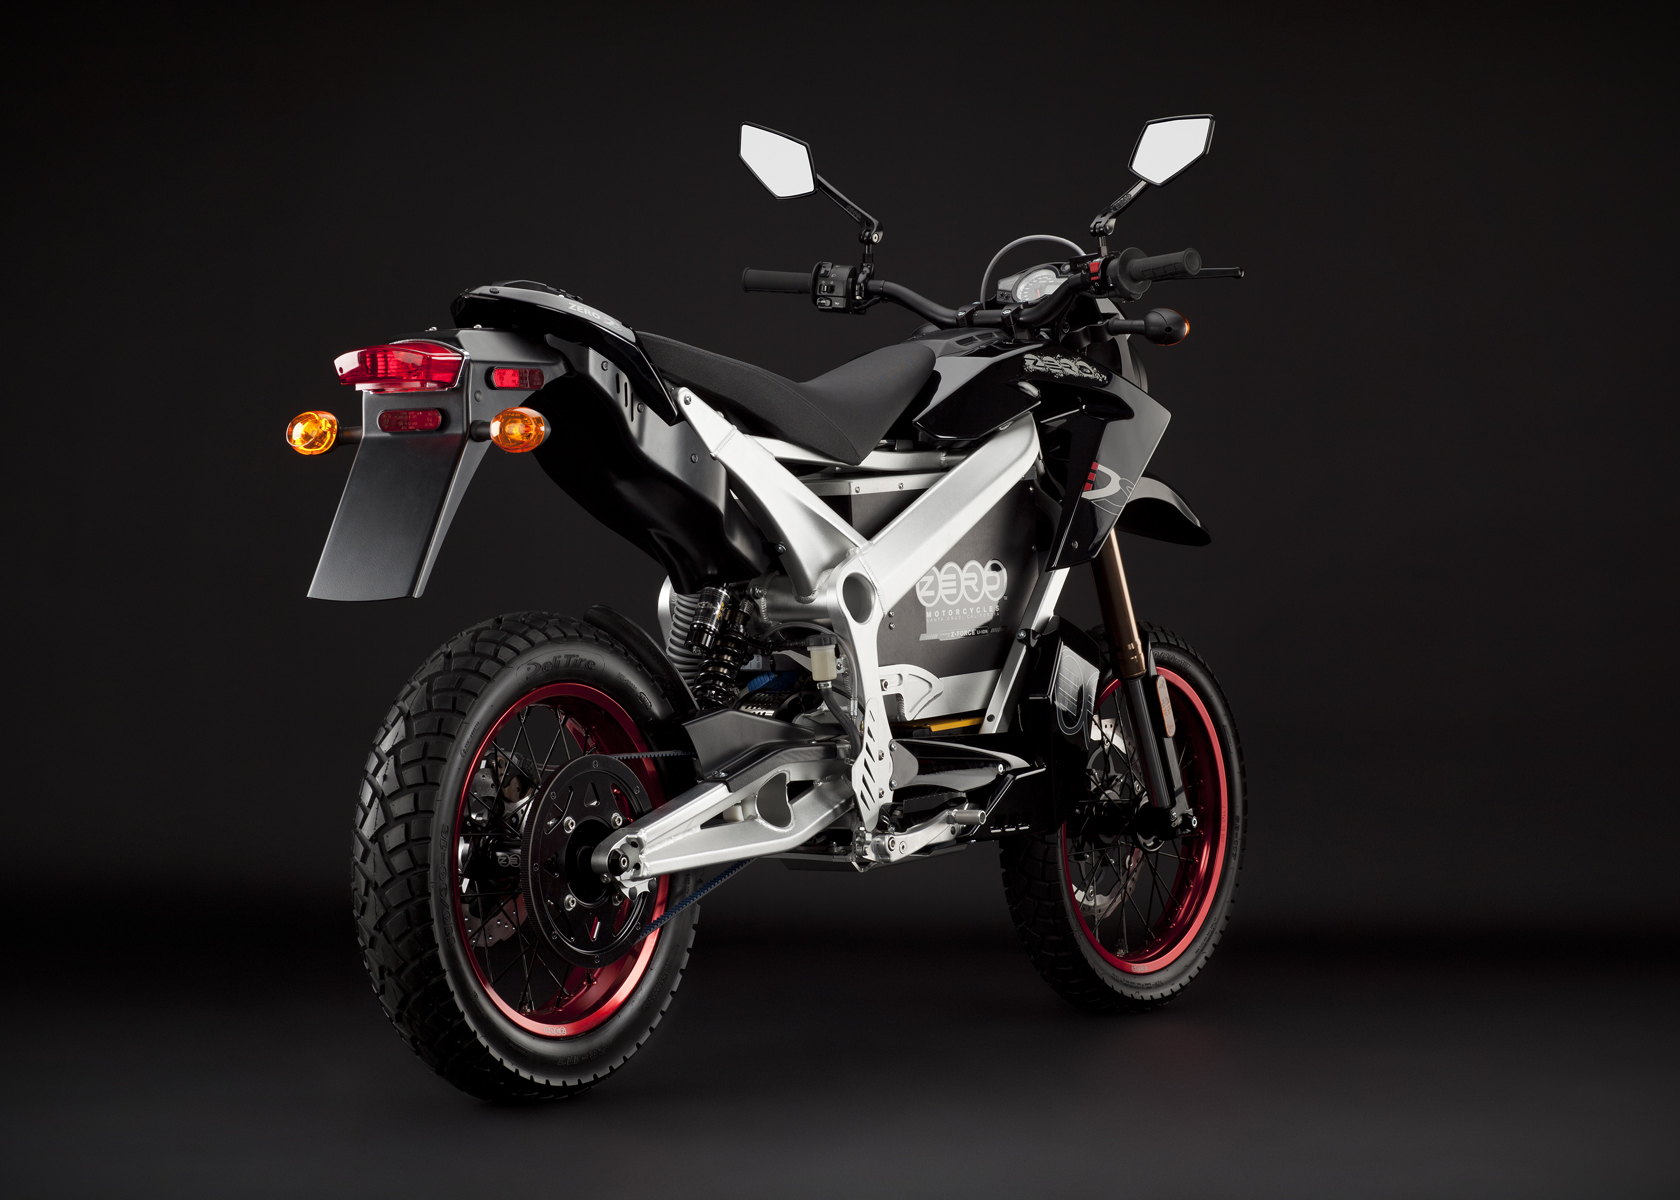 2011 Zero DS Electric Motorcycle: Black Angle Right, Rear View